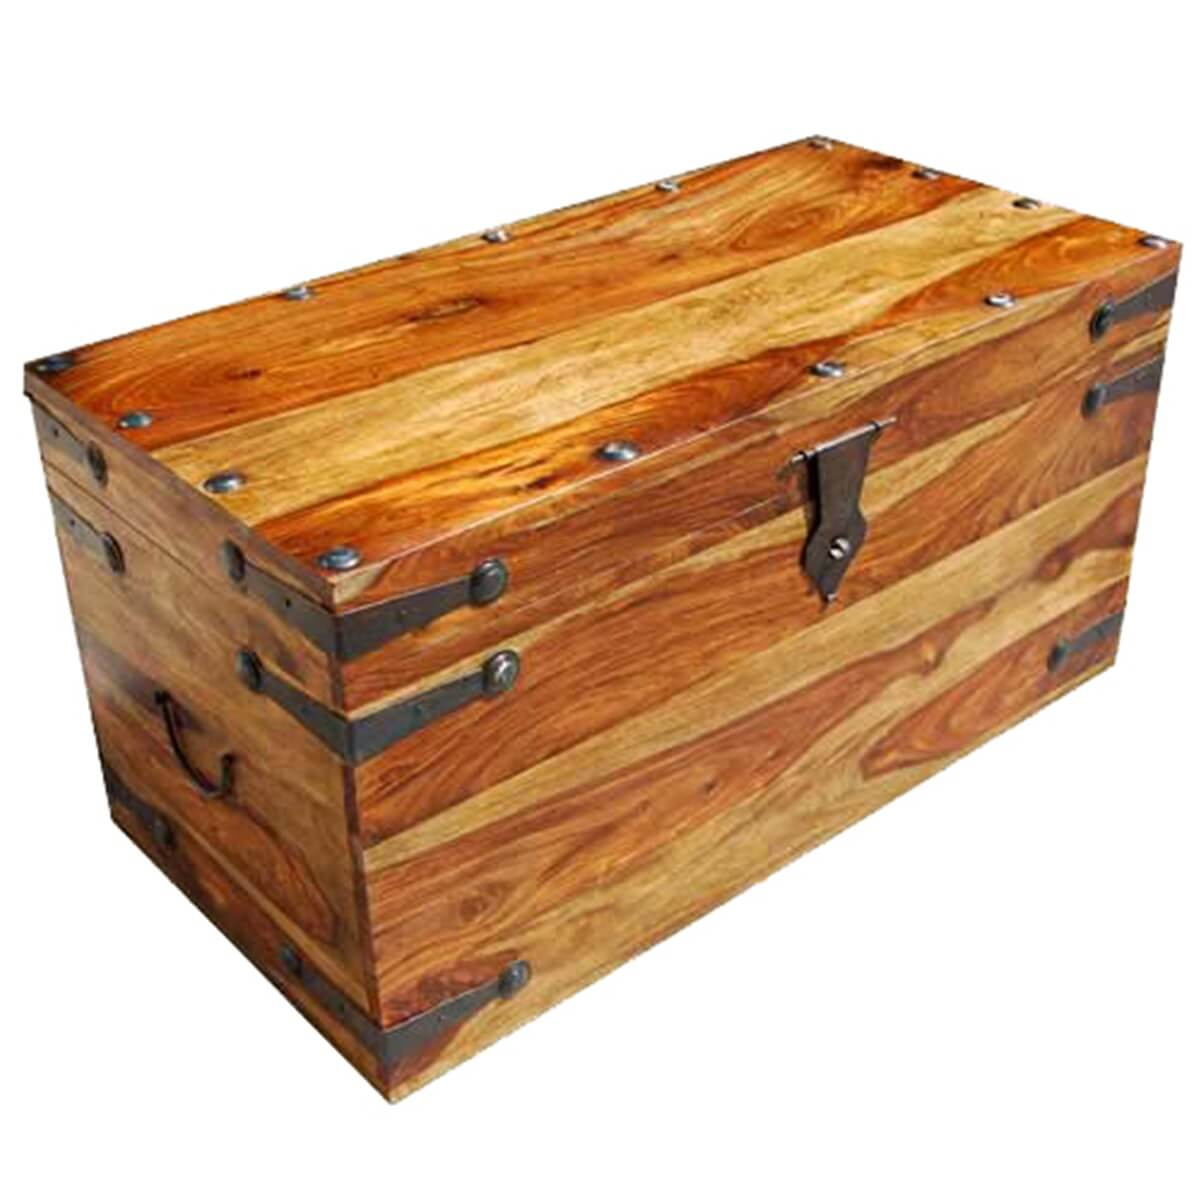 Kokanee rustic solid wood blanket storage trunk coffee table chest ebay Coffee table chest with storage